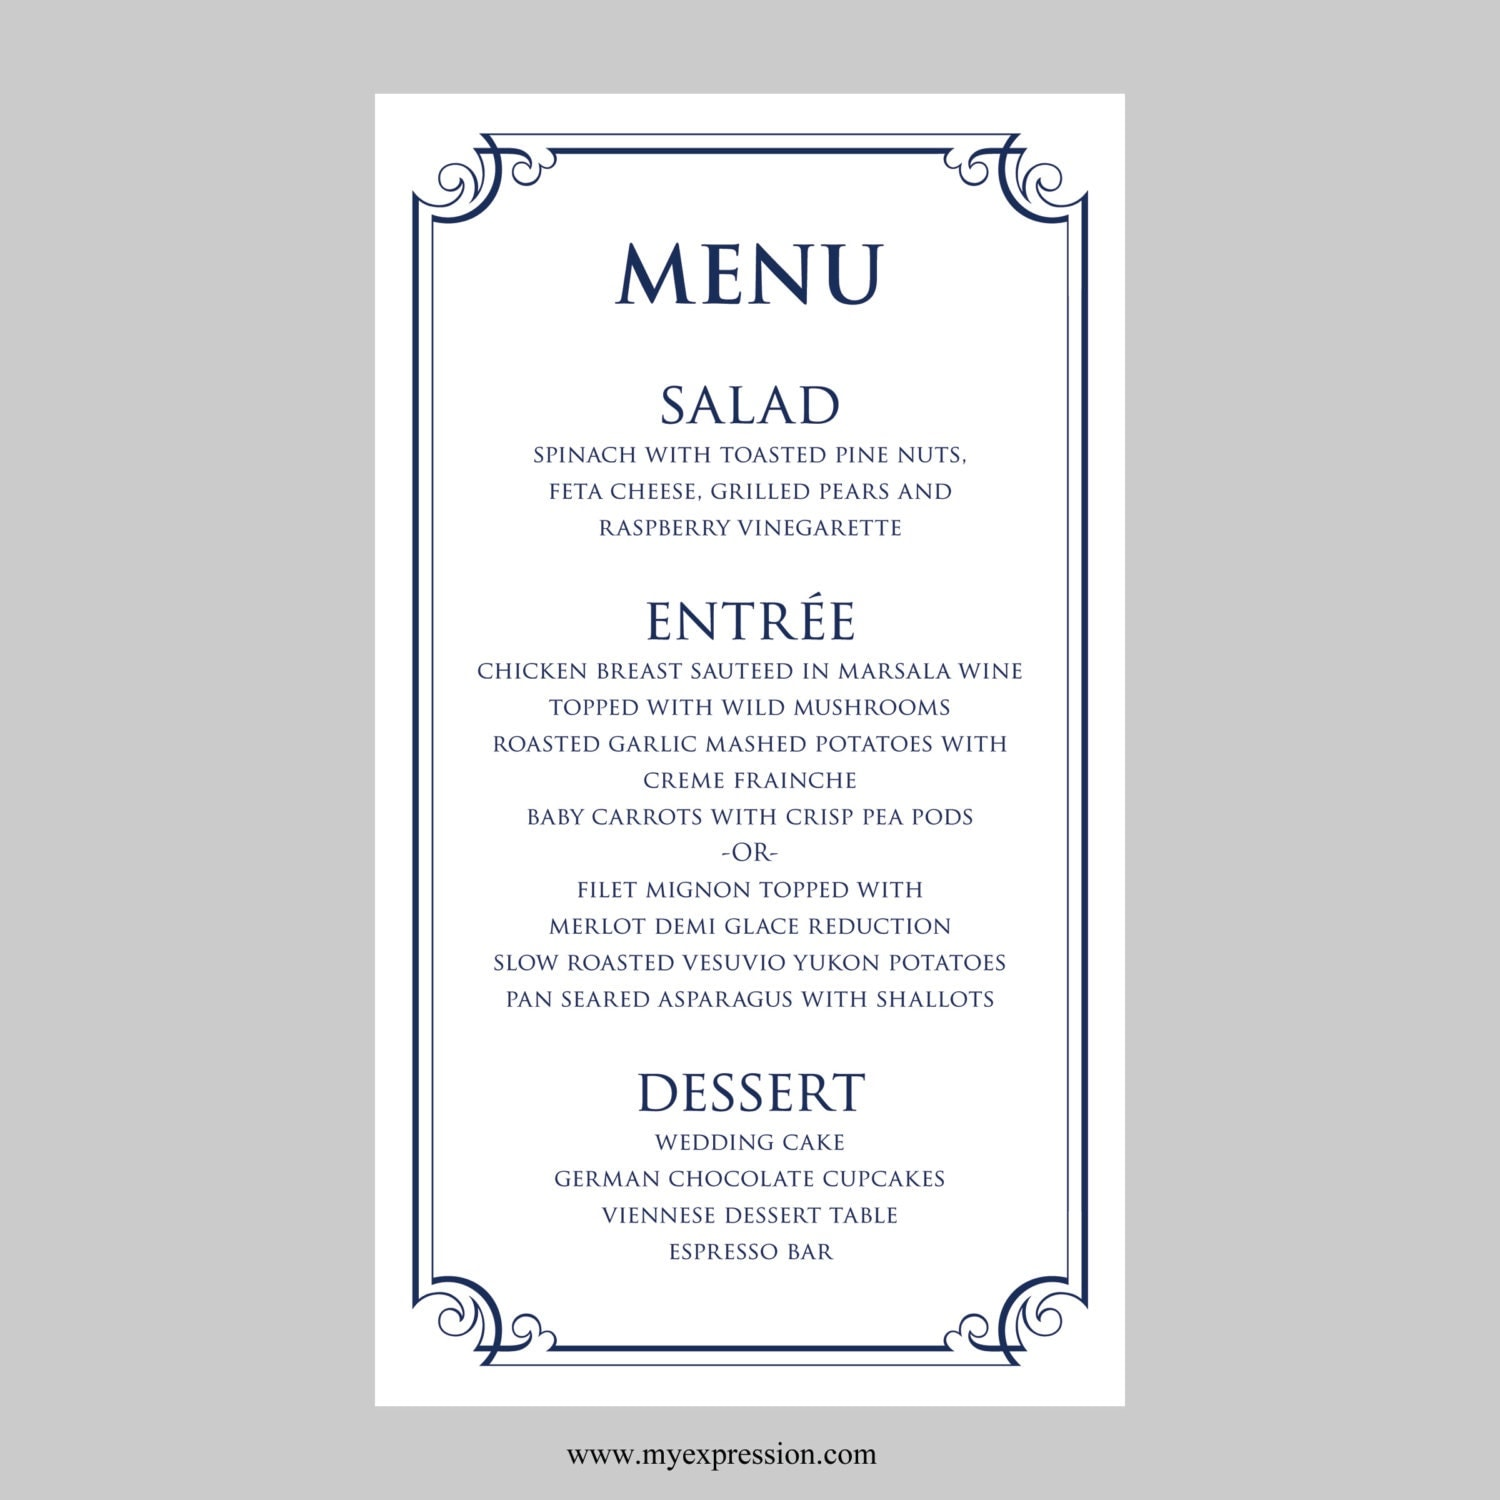 Free wedding menu card templates car interior design for Wedding menu cards templates for free